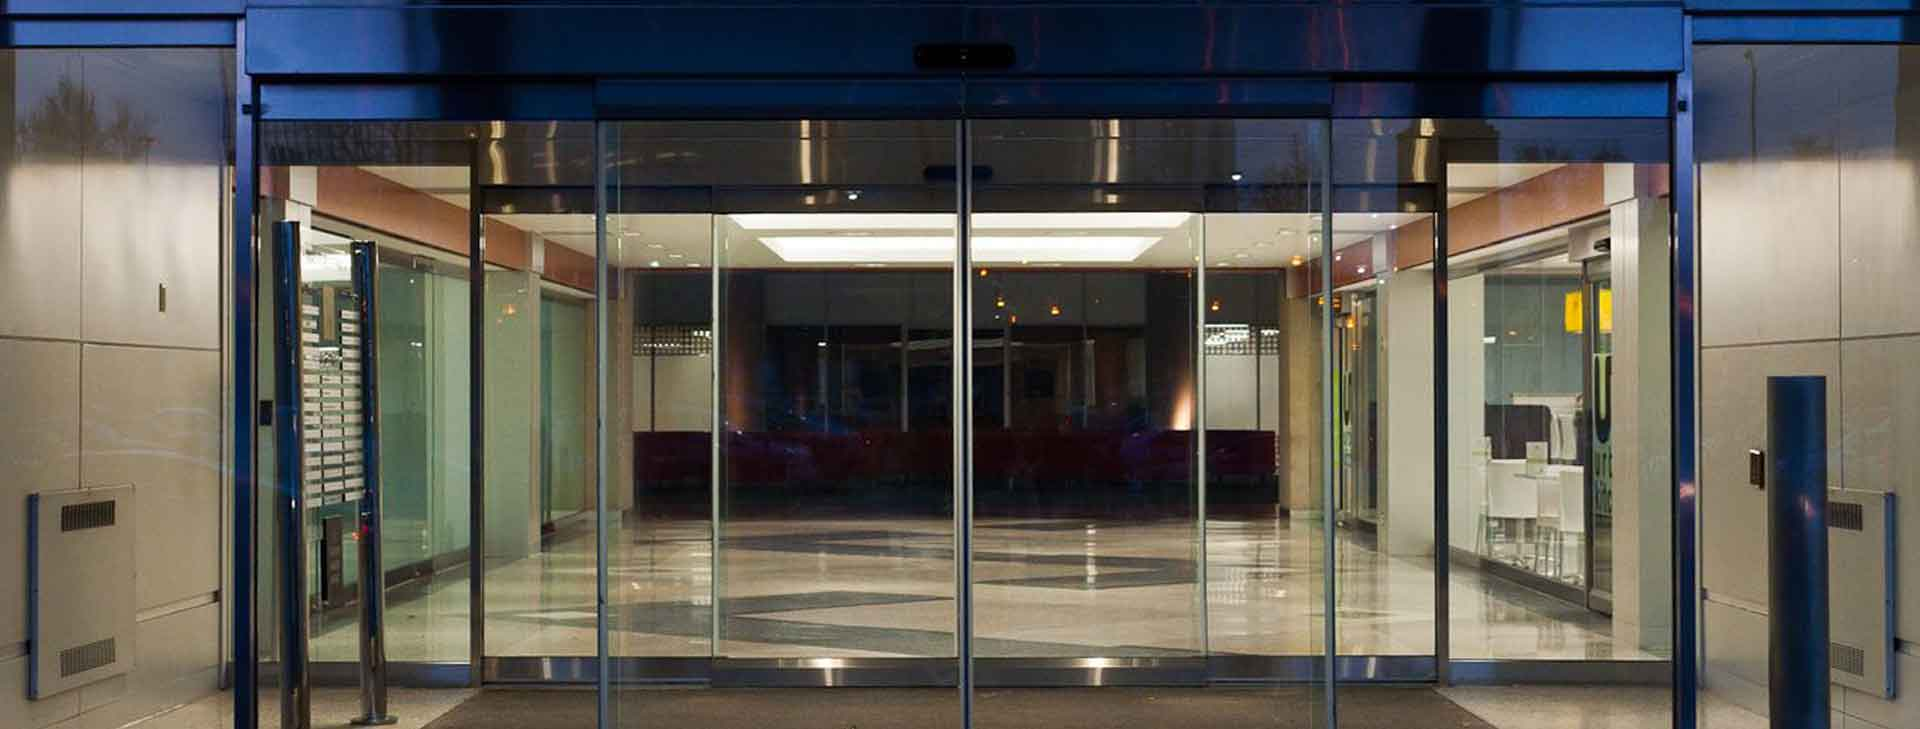 Advantages of automatic glass doors in commercial spaces